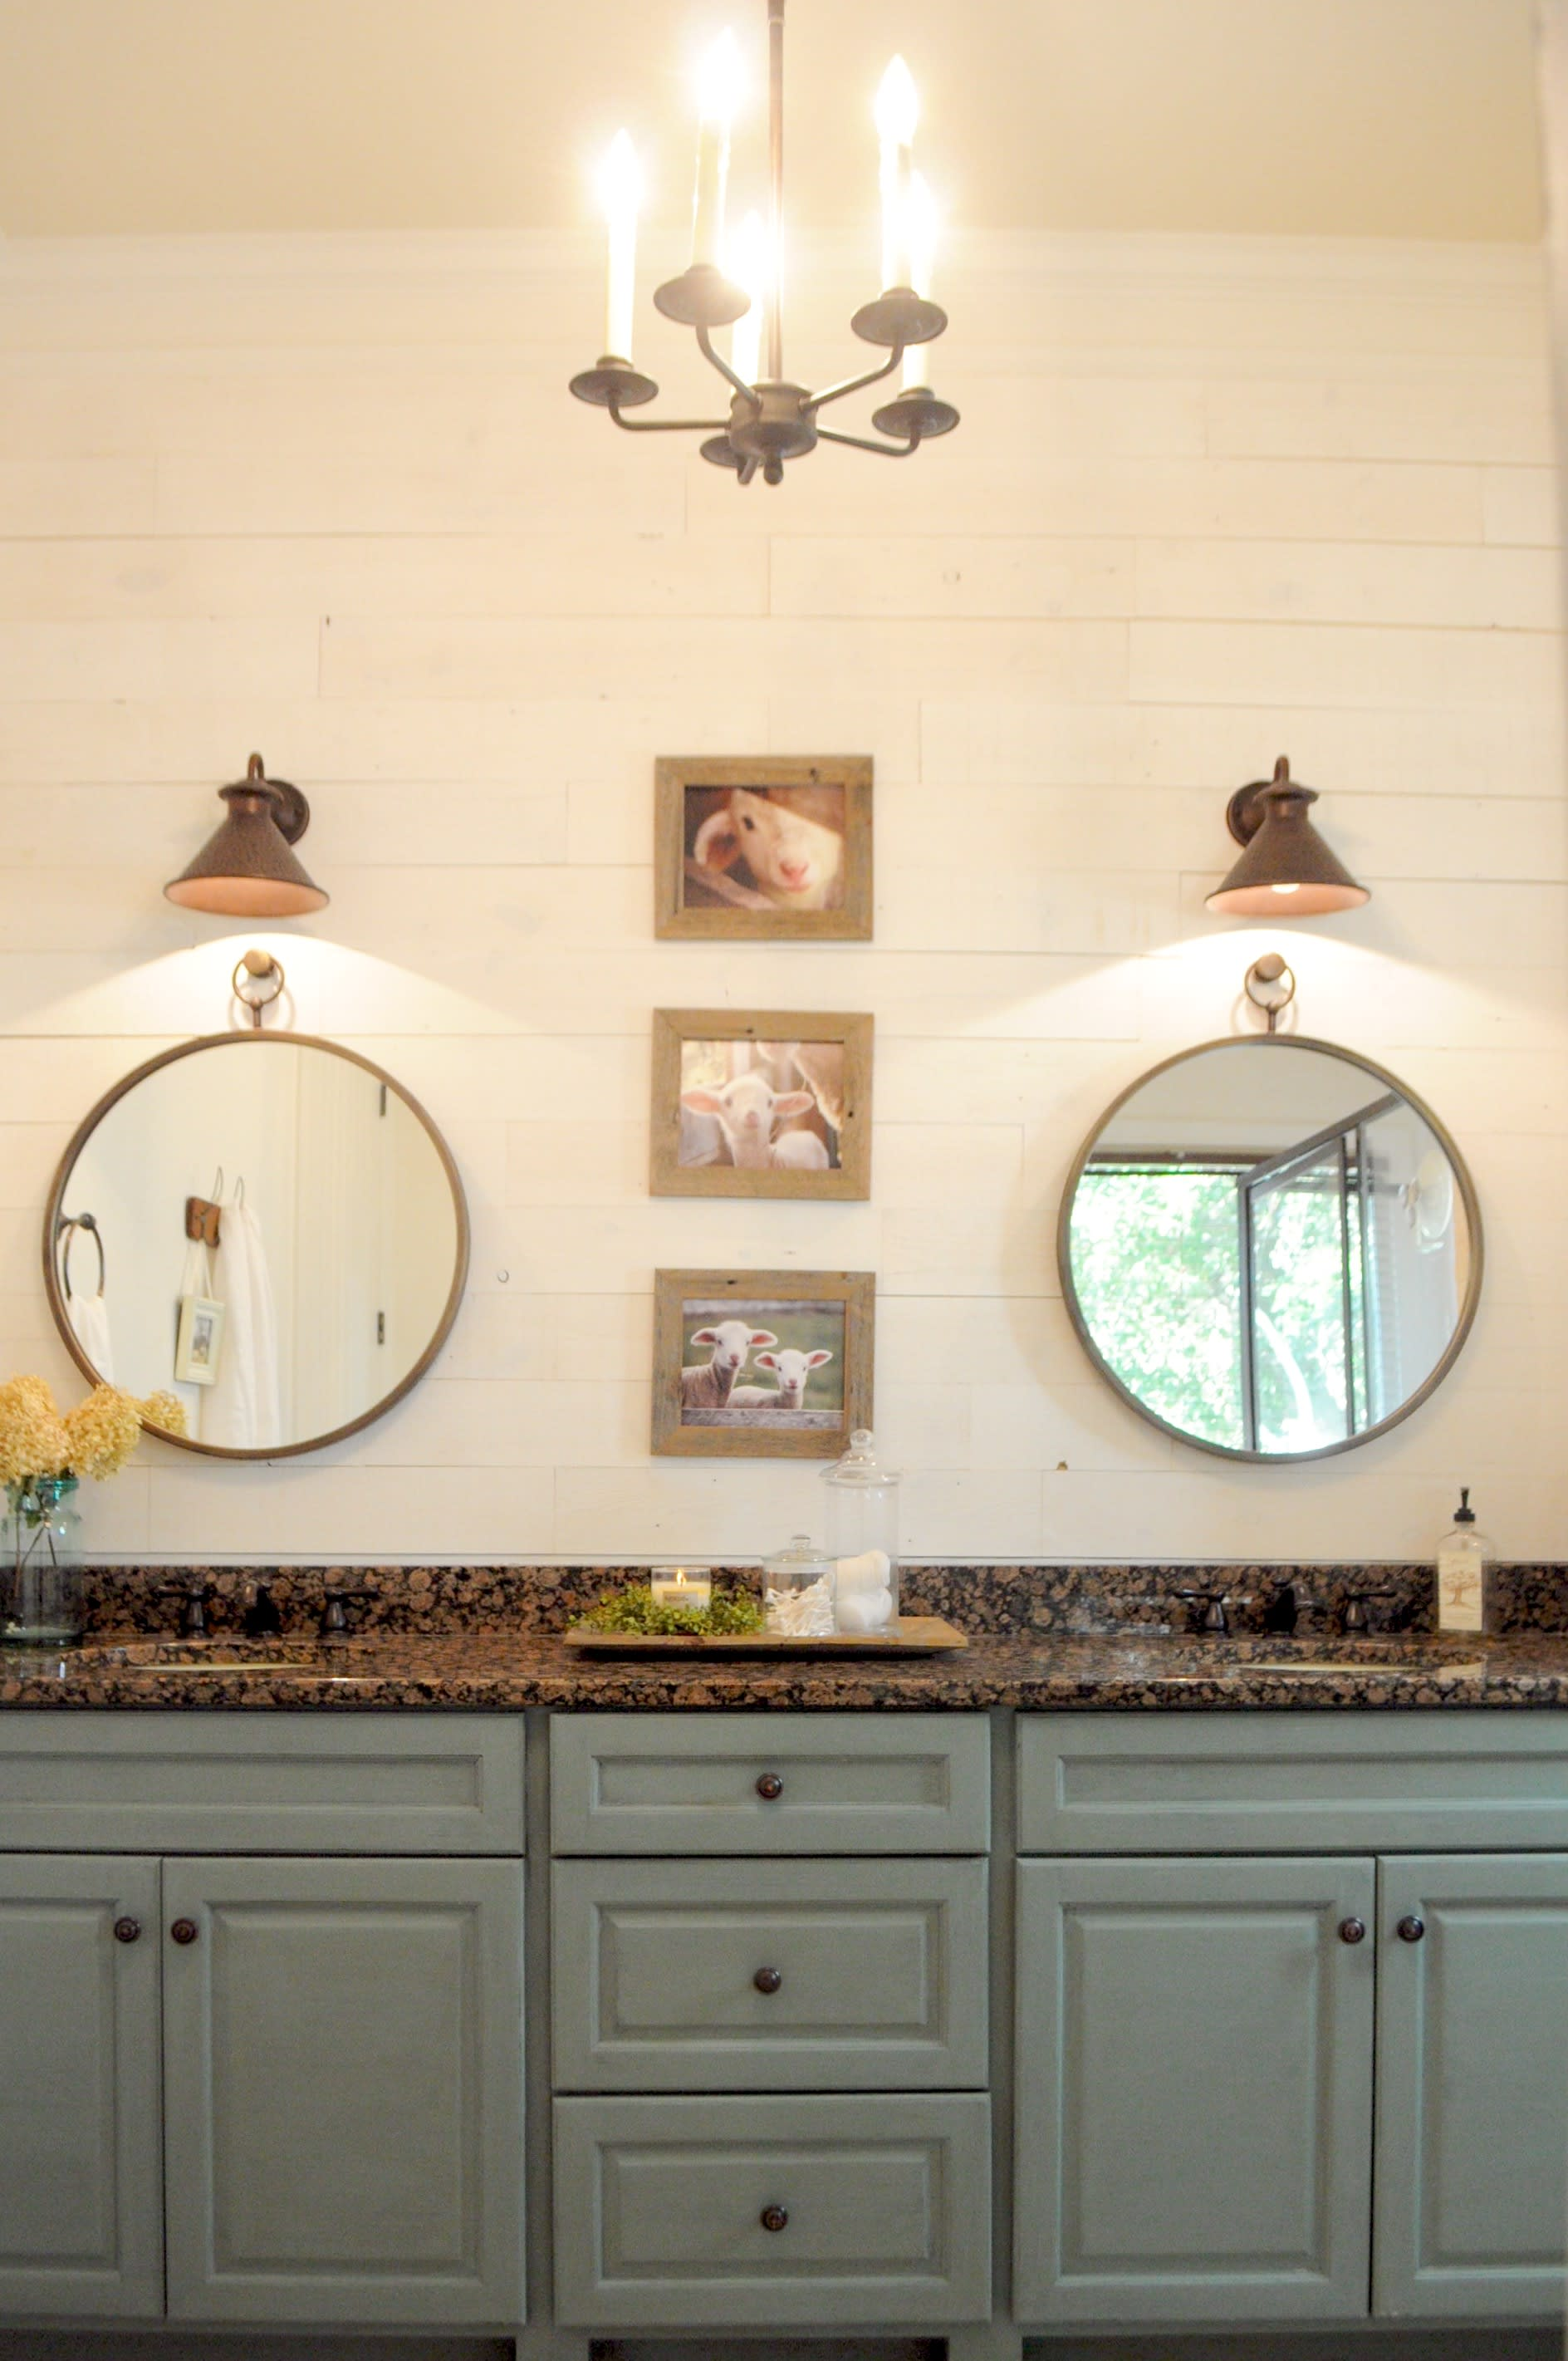 Modern farmhouse bathroom vanity with two sinks and mirrors and an accent wall made from Hamptons shiplap peel and stik reclaimed wood.